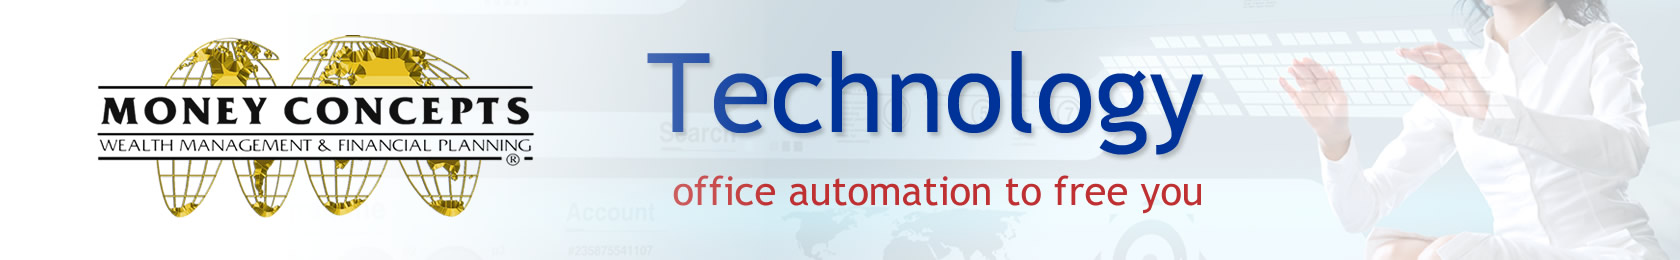 Financial Office Technology